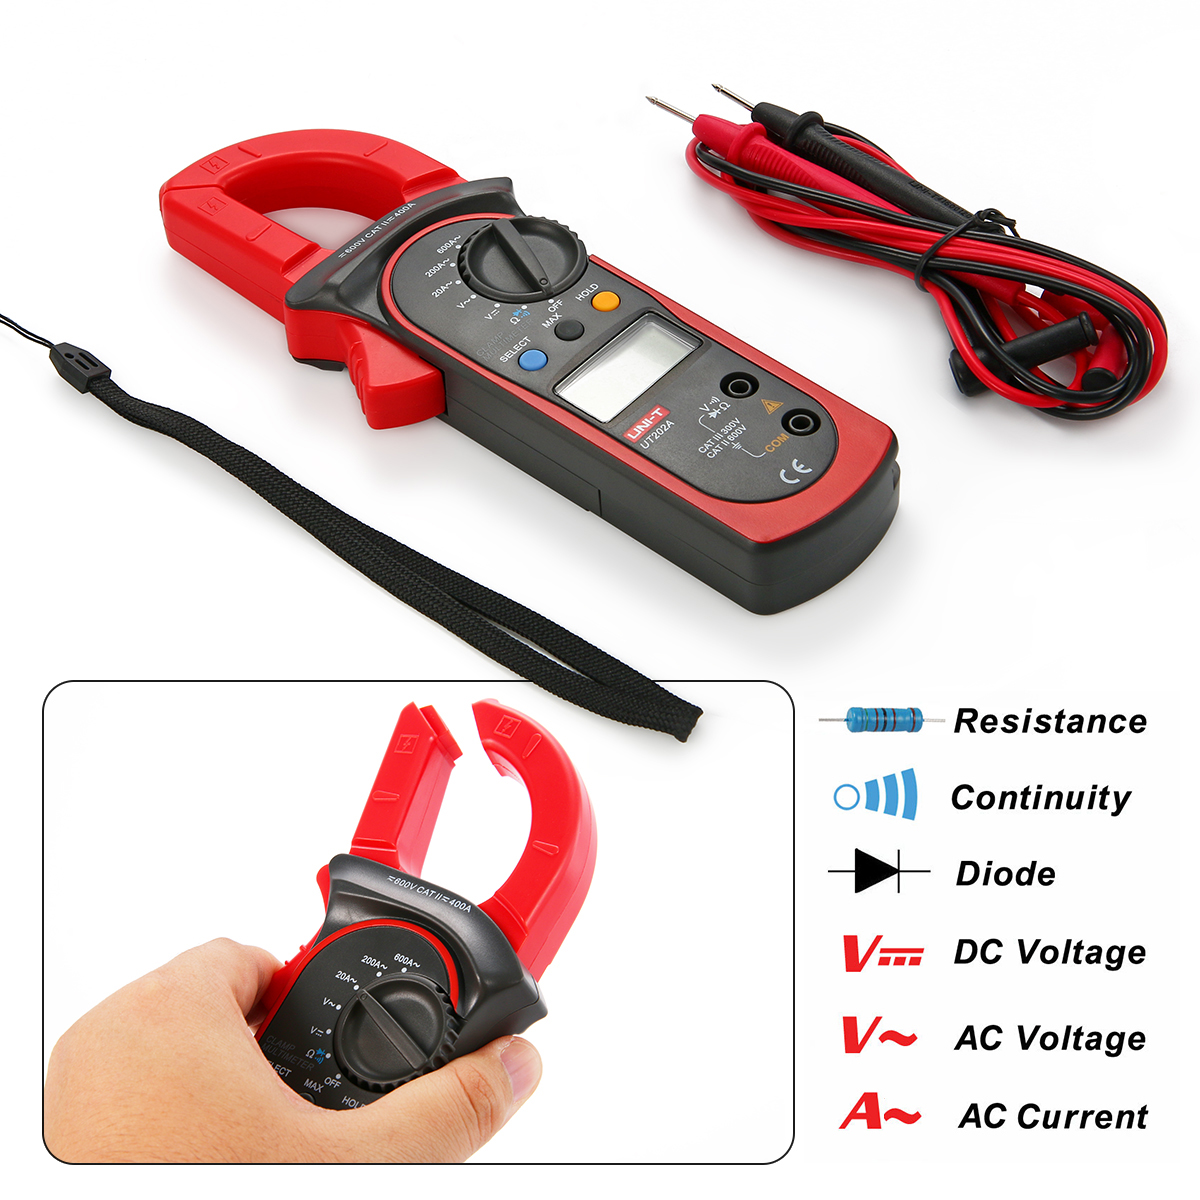 ФОТО UT202A DC/AC voltage current test electric current resistance Digital Clamp Meter LCD Digital Display Multimeter Handheld BI151